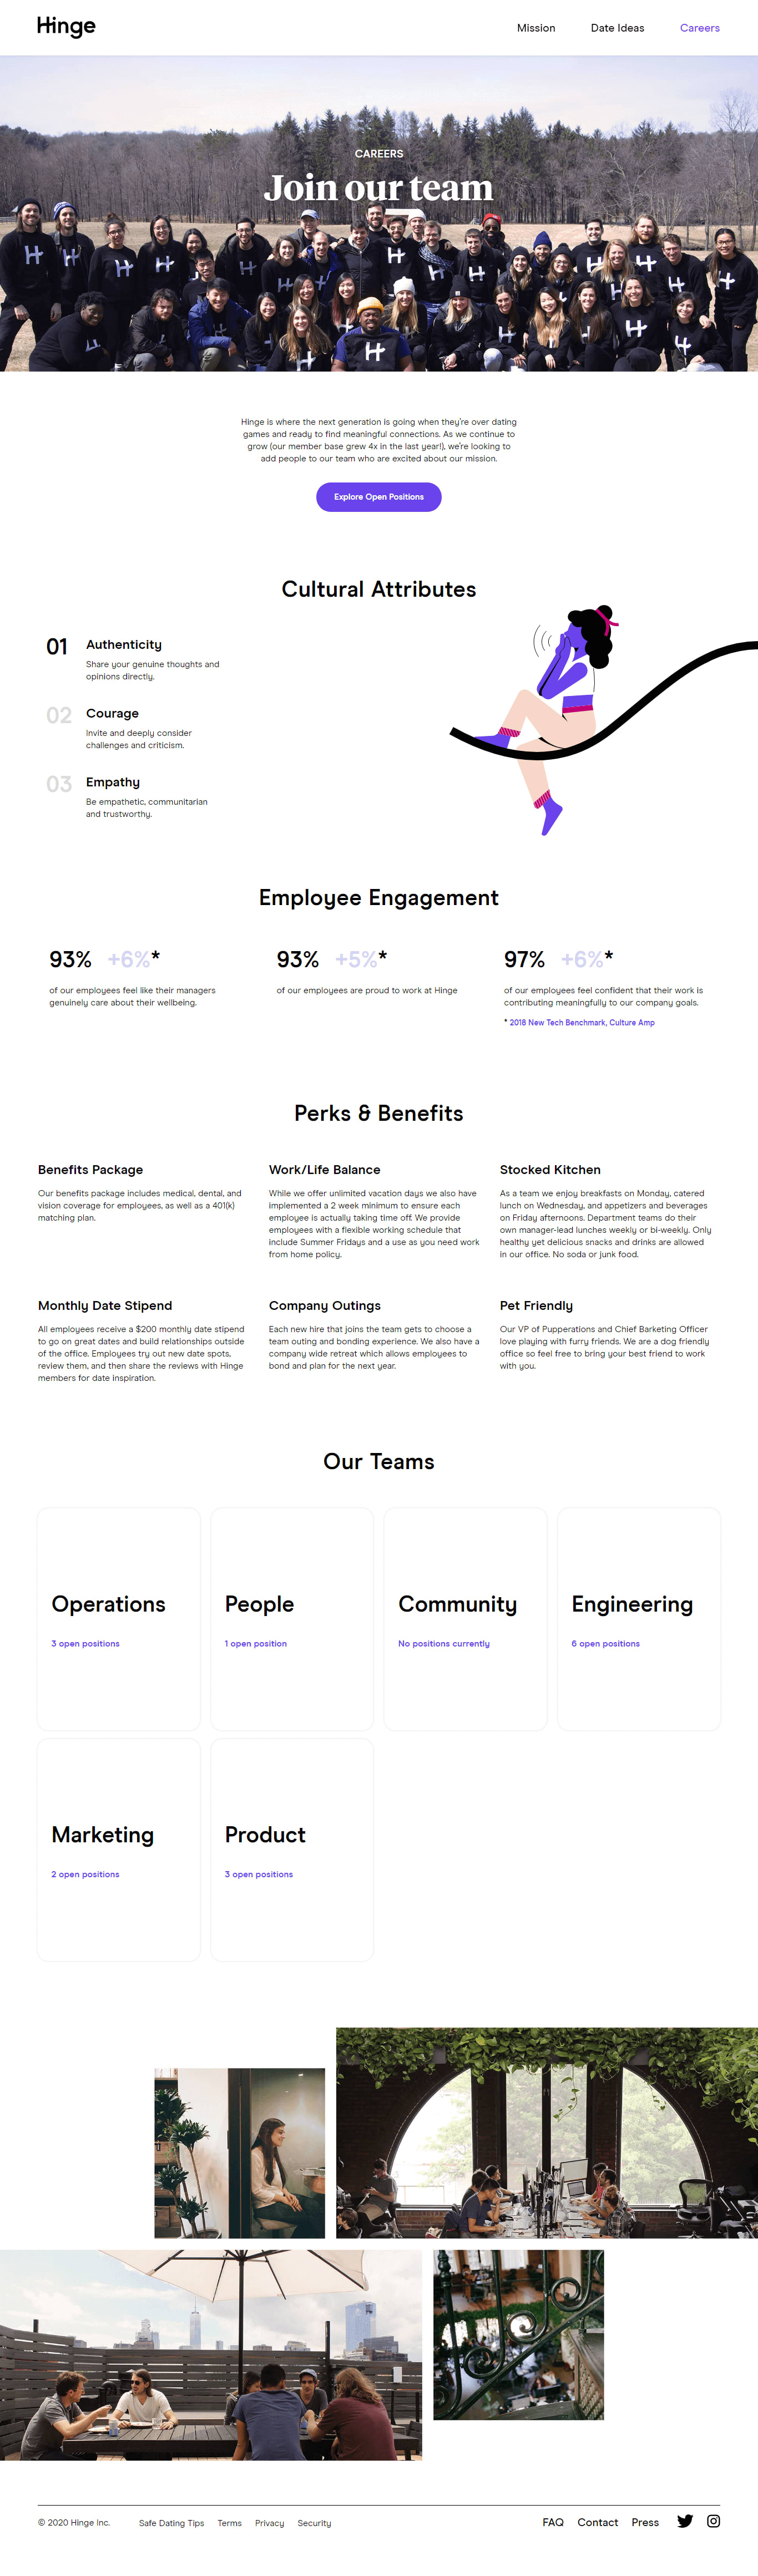 Hinge team and careers page.